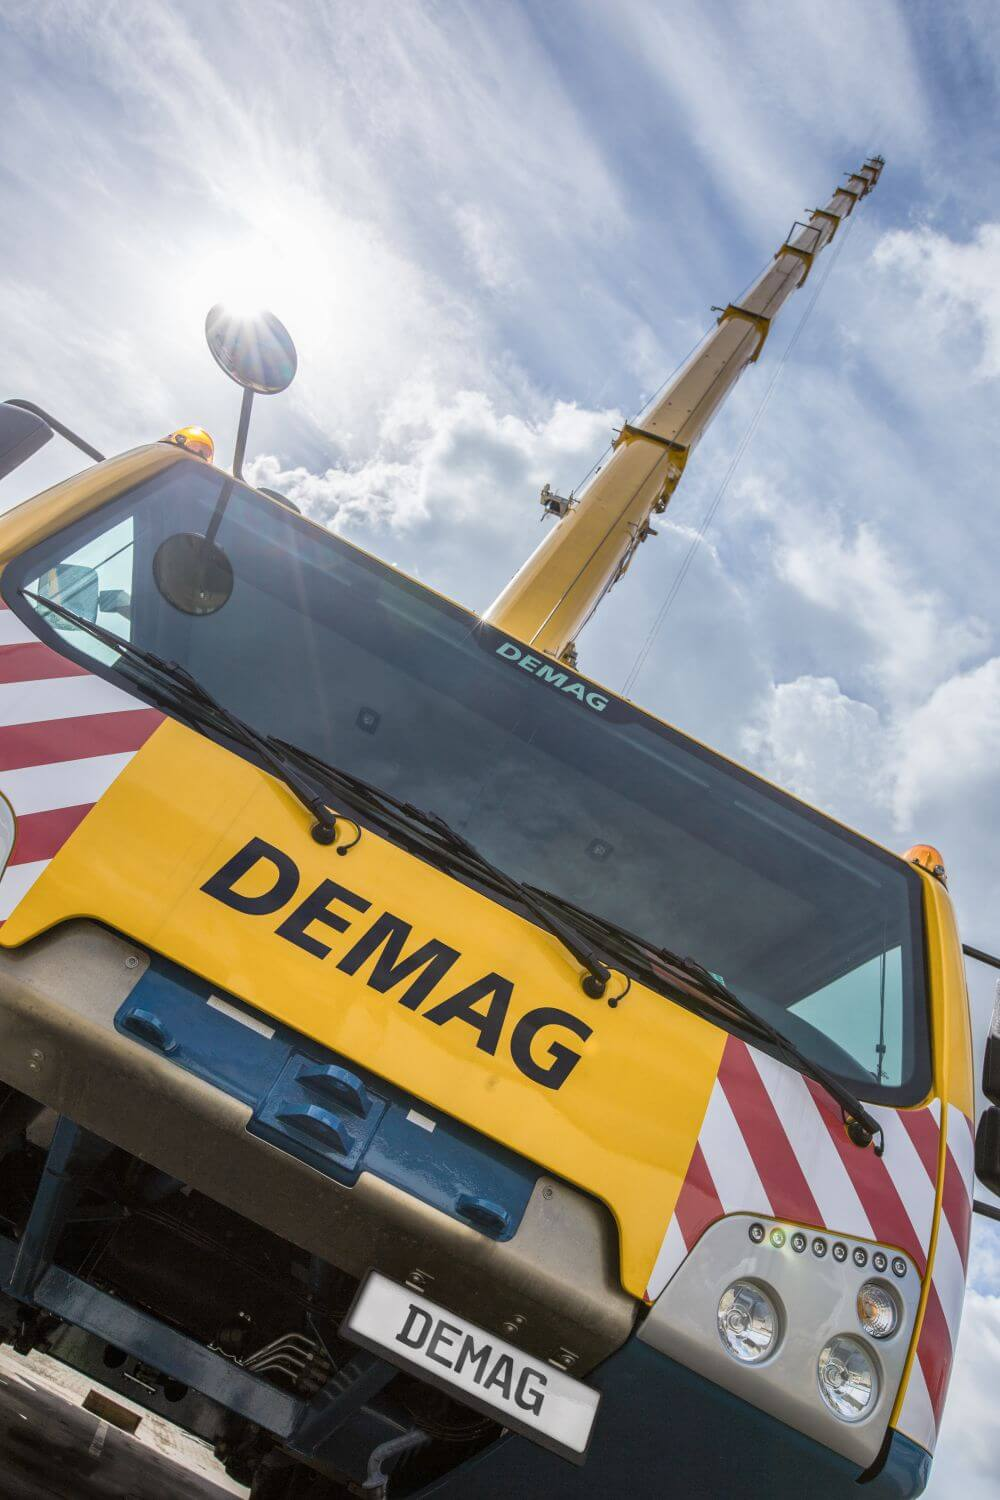 Demag-Mobilkransparte